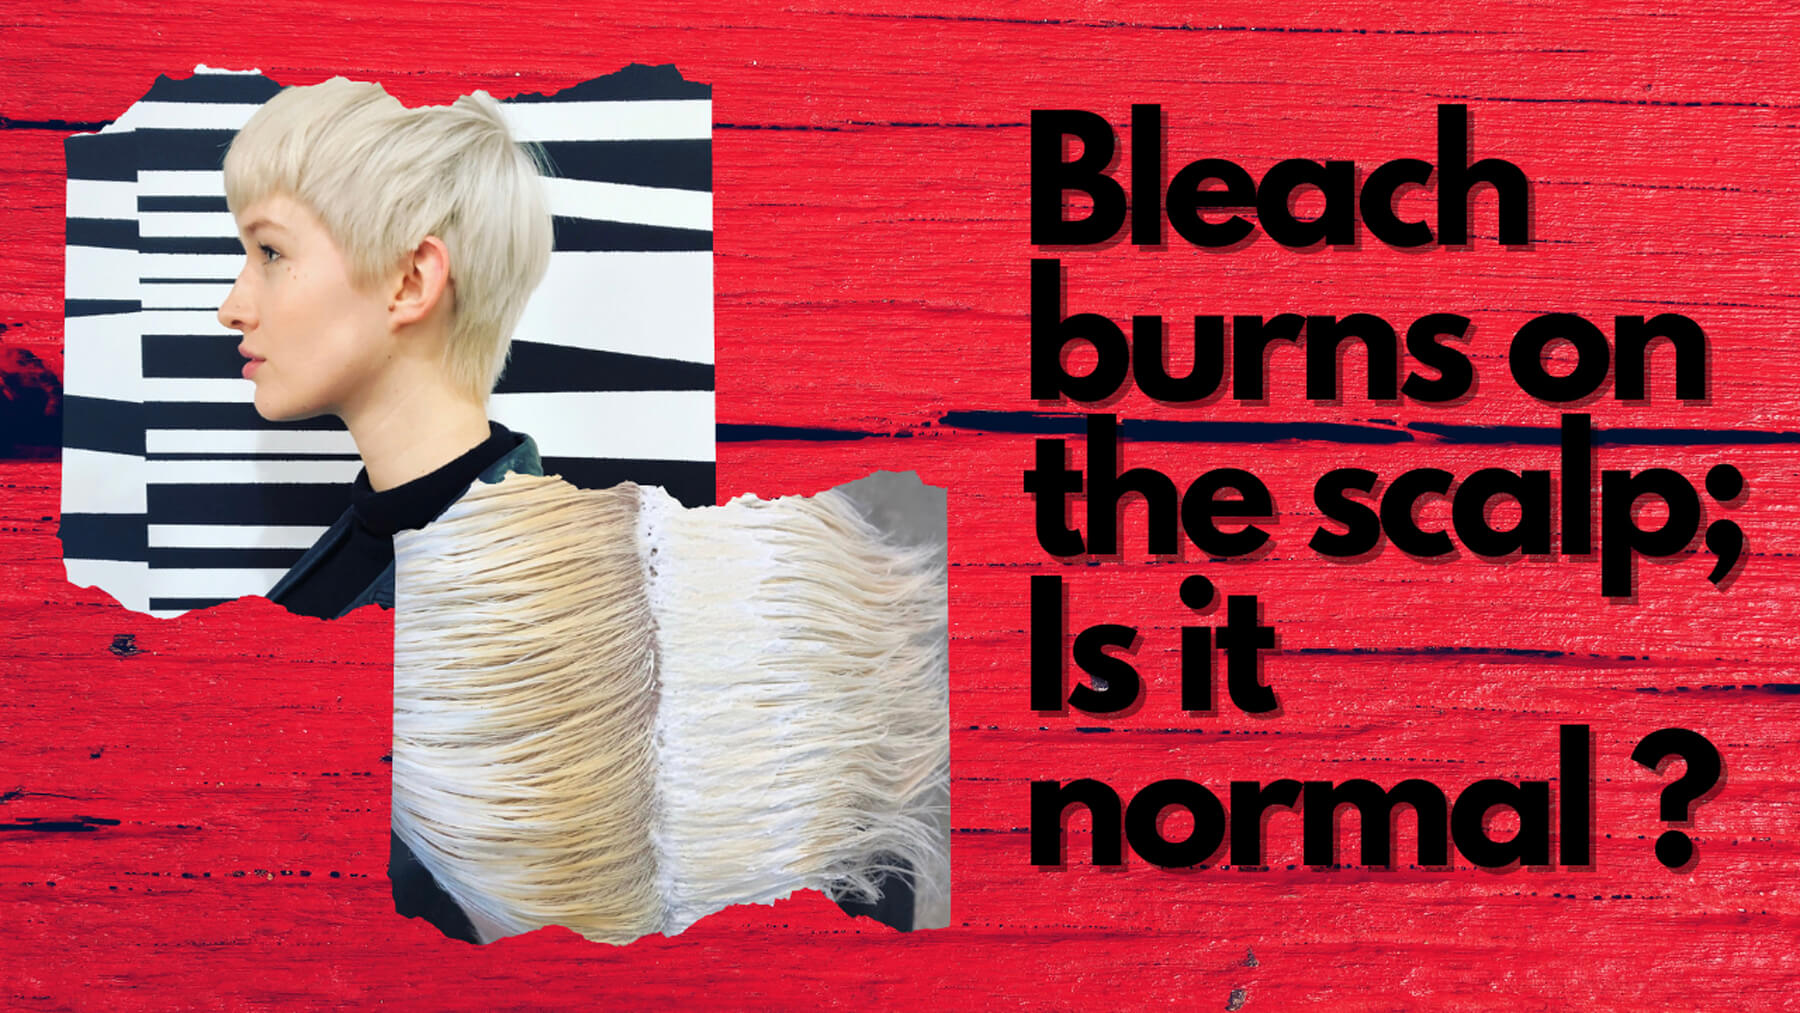 Bleach burns on the scalp graphic on red